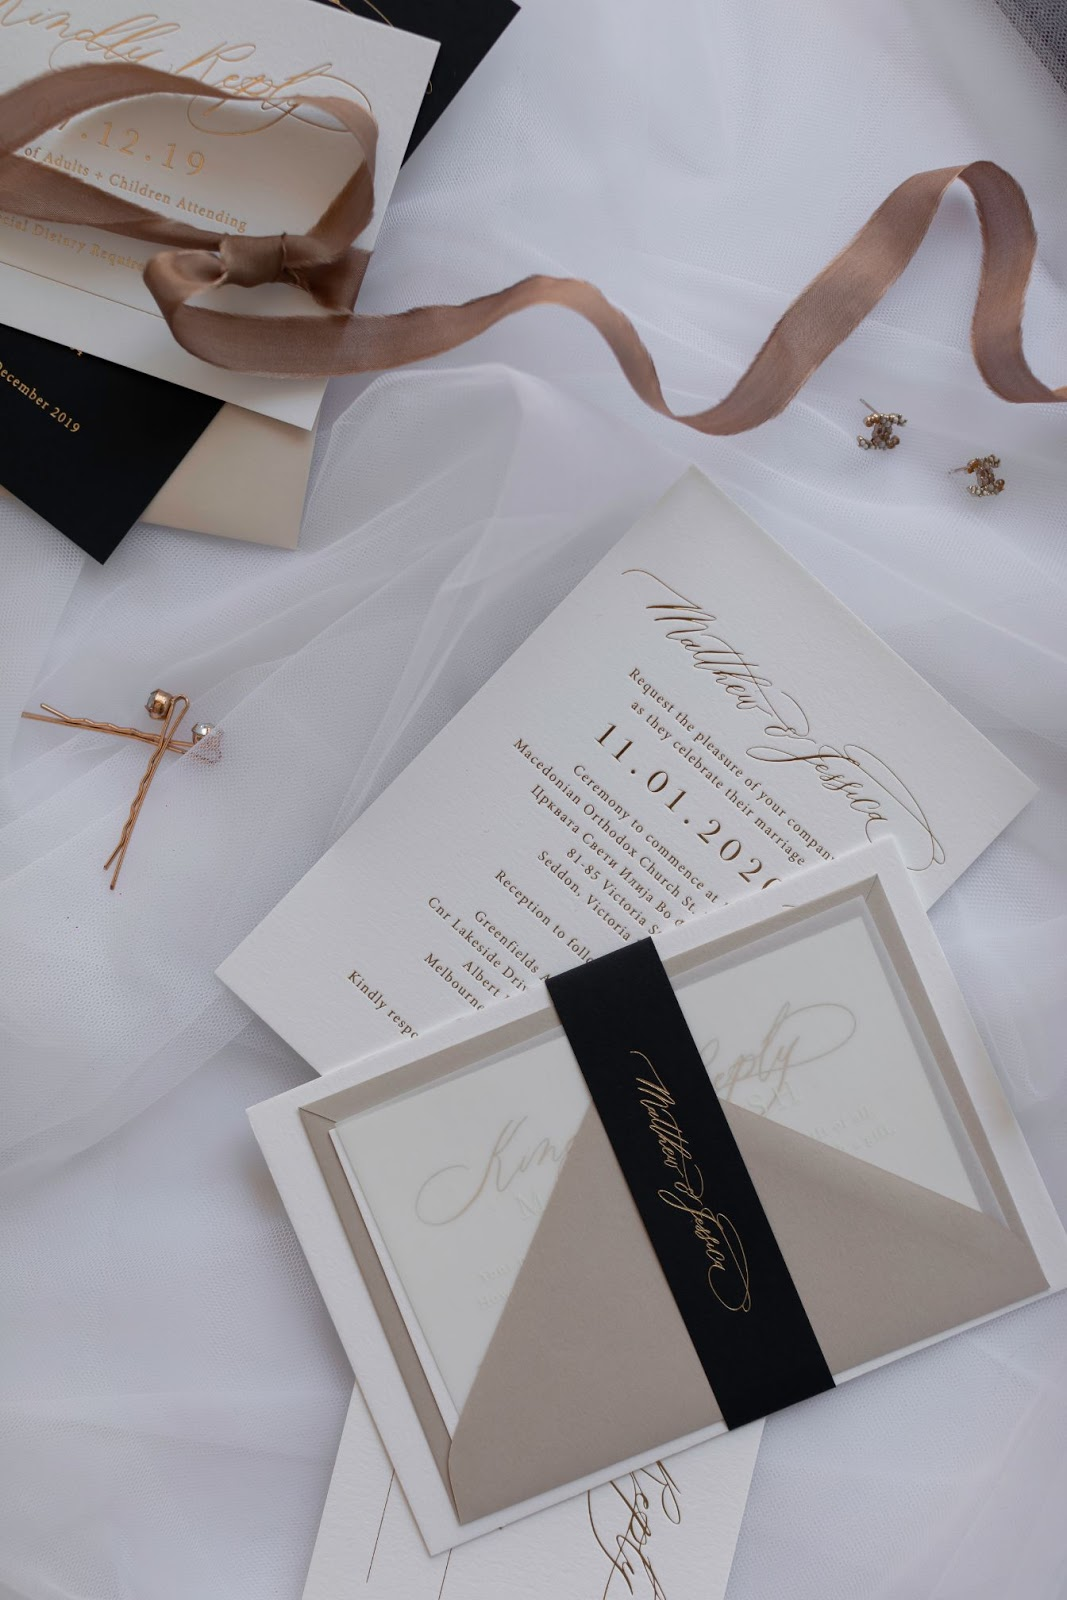 george john photography wedding stationery designer menus place cards invites